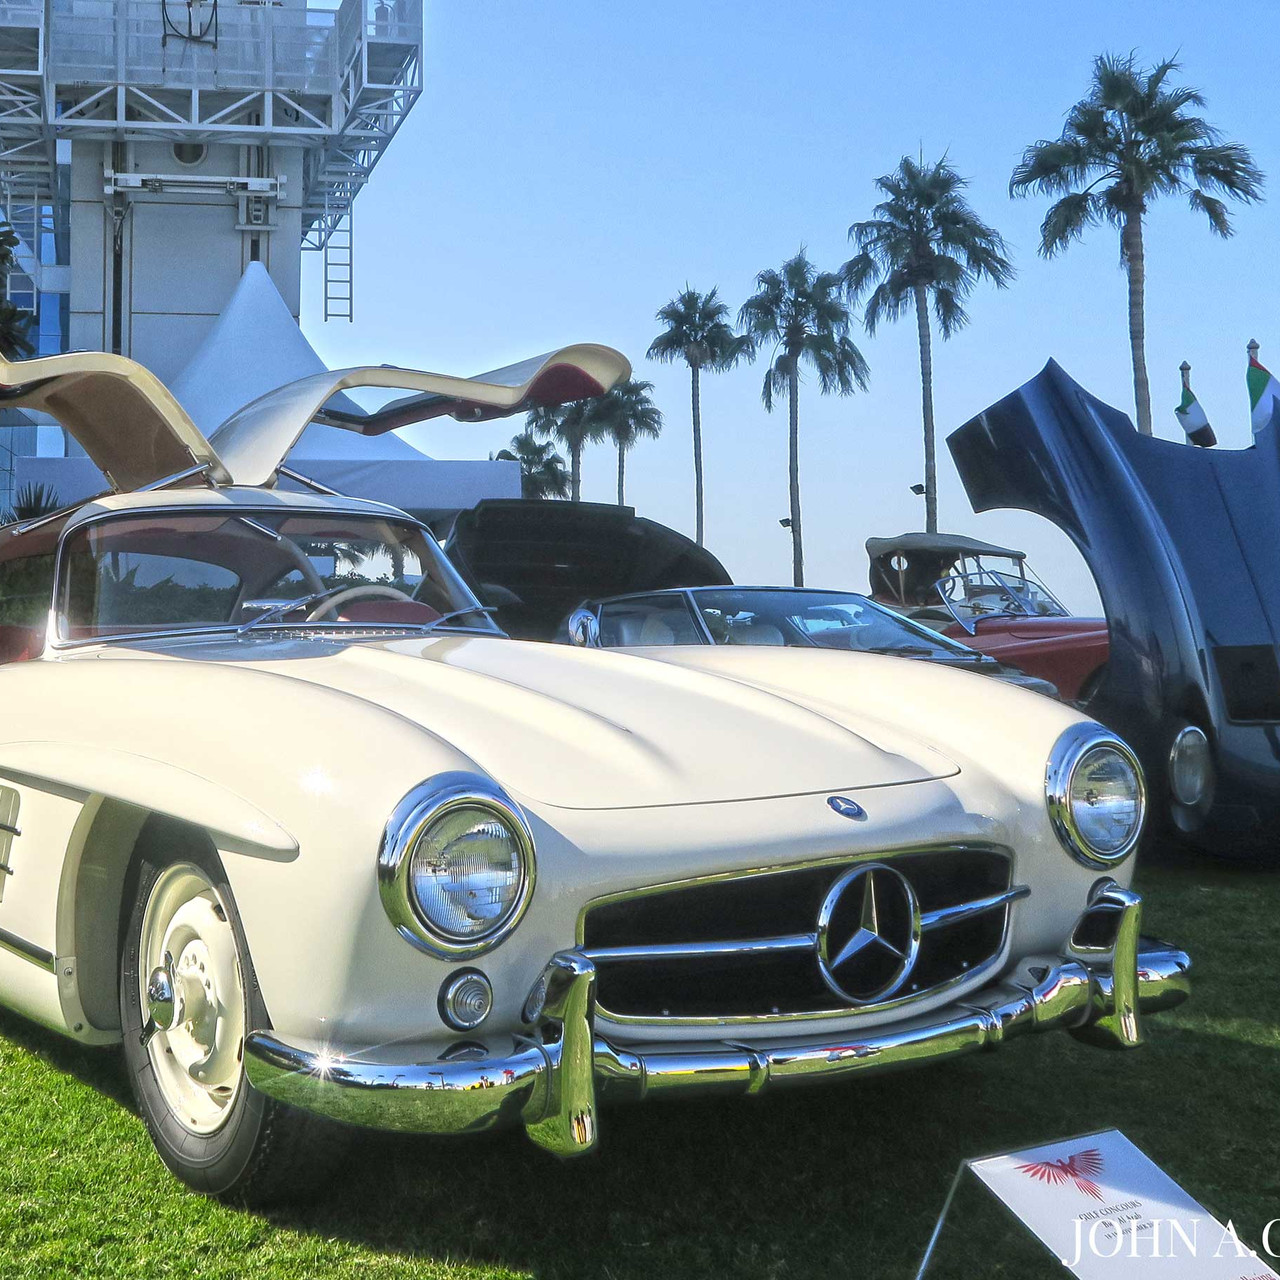 Right at the venue's entrance you can find pristine classics such as the 1955 Mercedes Benz 300SL Gullwing and the 1971 Lamborghini Miura SV.